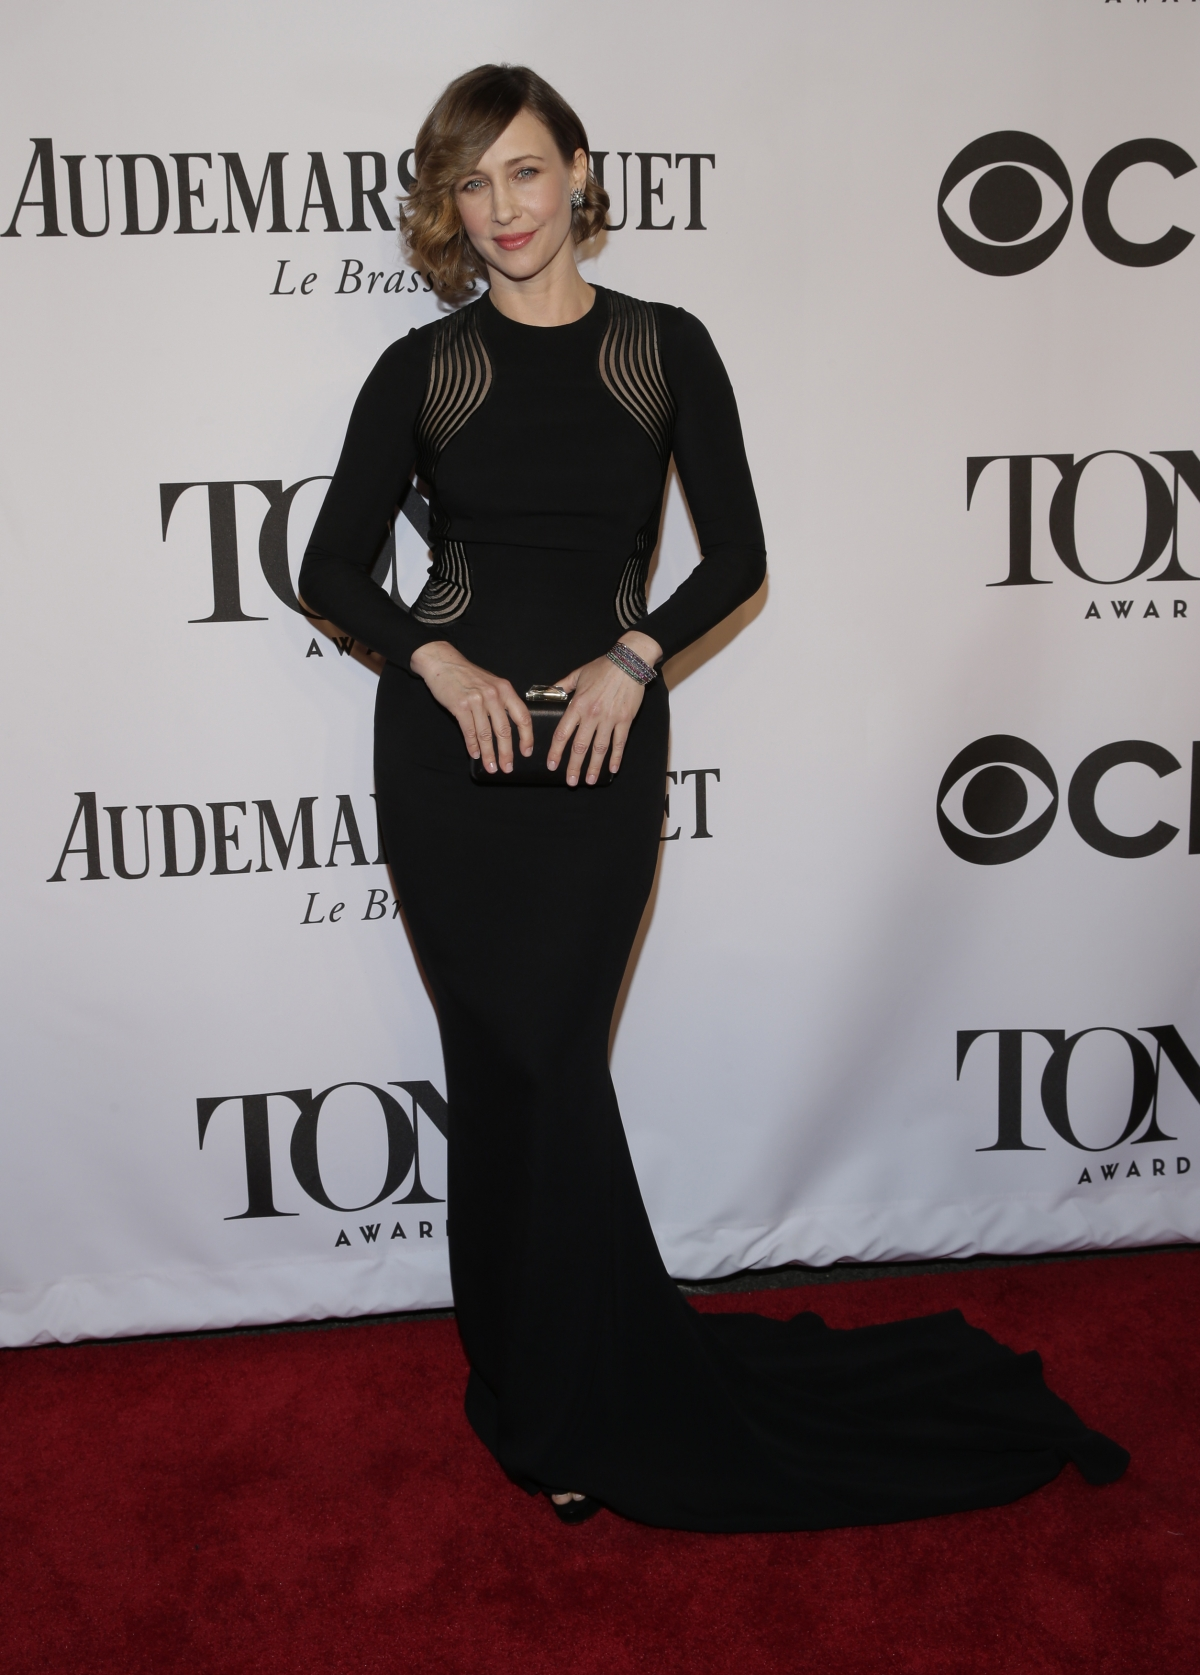 Actress Vera Farmiga arrives for the American Theatre Wing's 68th annual Tony Awards at Radio City Music Hall in New York, June 8, 2014.